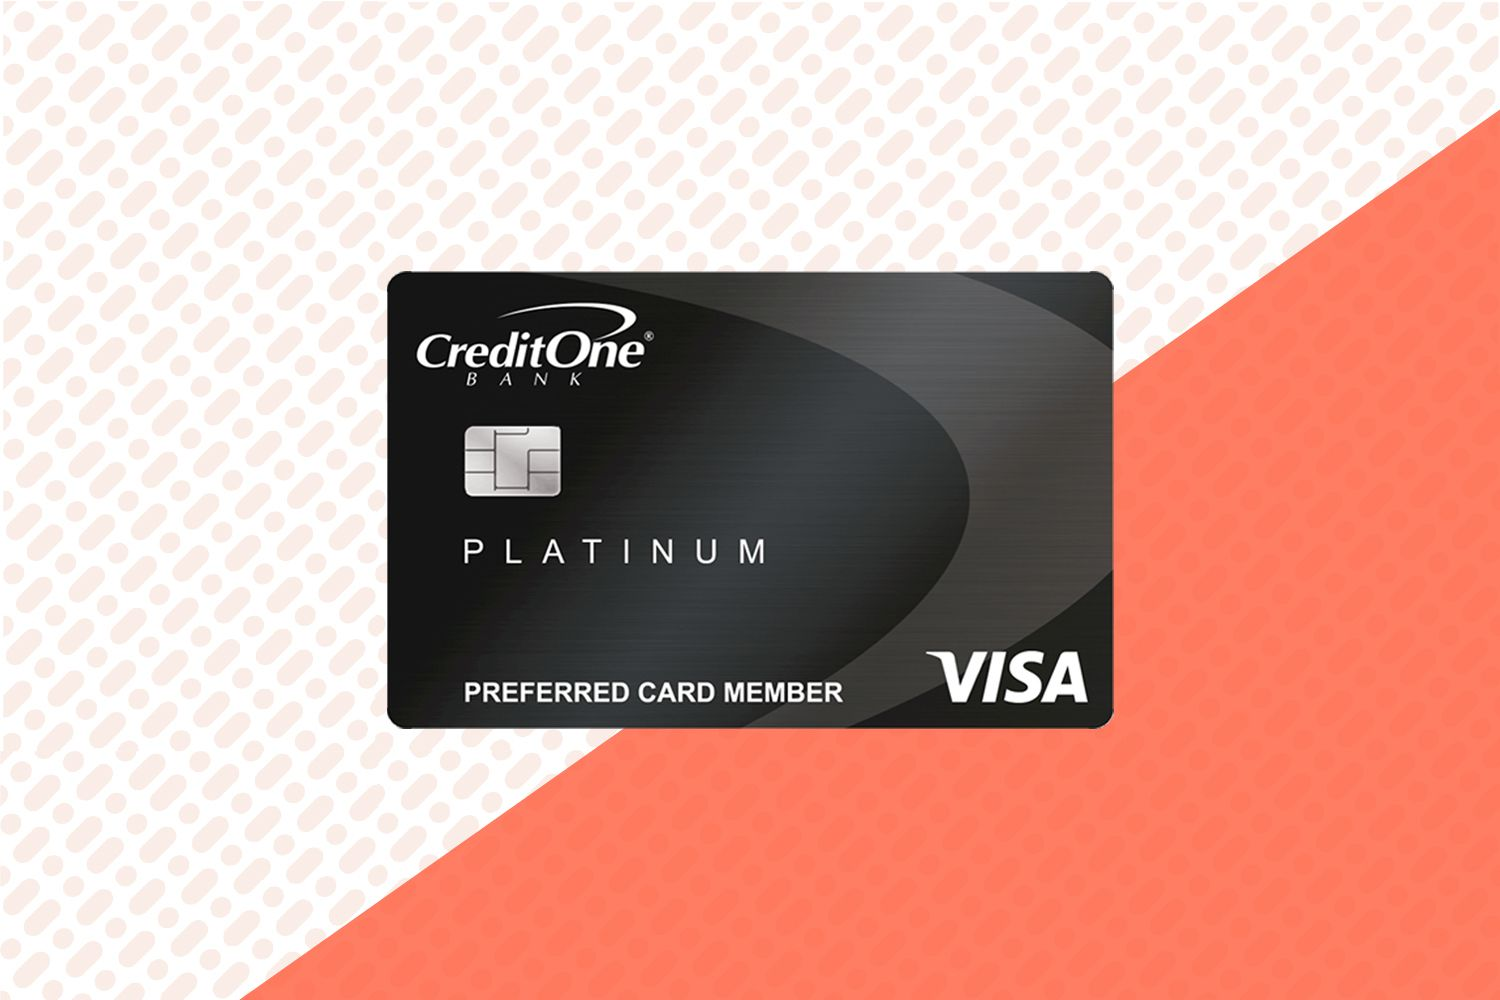 Credit one bank credit card payment phone number